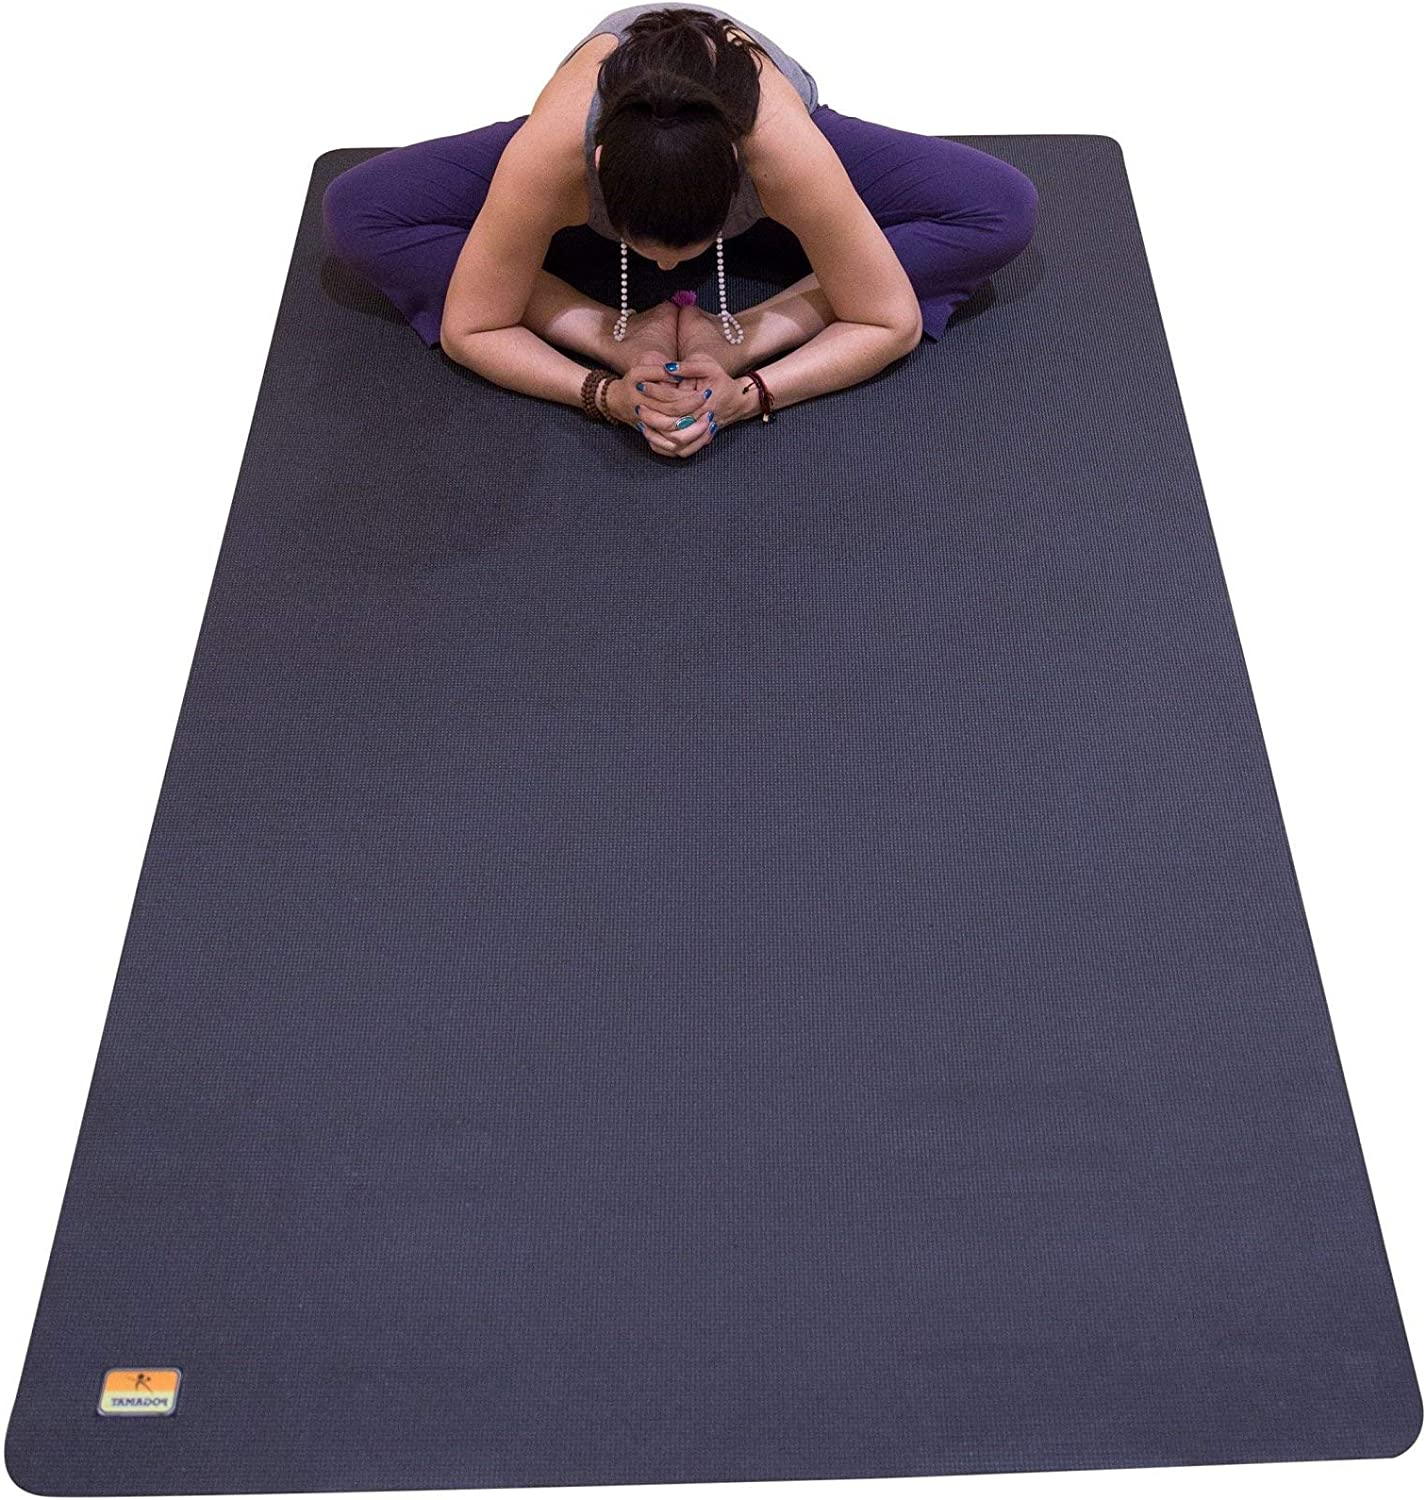 Pogamat XXL Yoga Mat and Barefoot Exercise Mat - 84